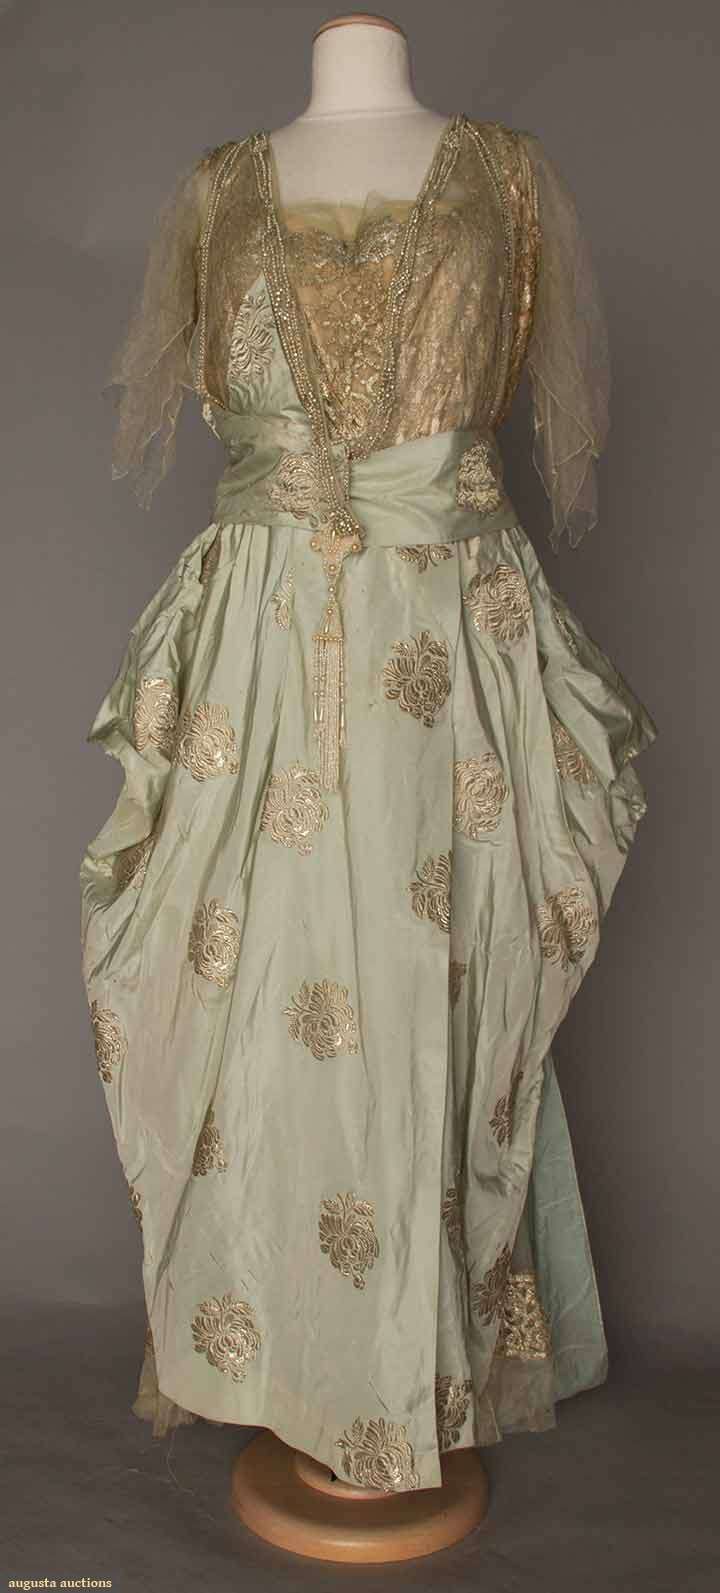 Balcom New York Ball Gown, 1910s Gold lame fabric with pastel blue silk; lame lace bodice with pearls and rhinestones